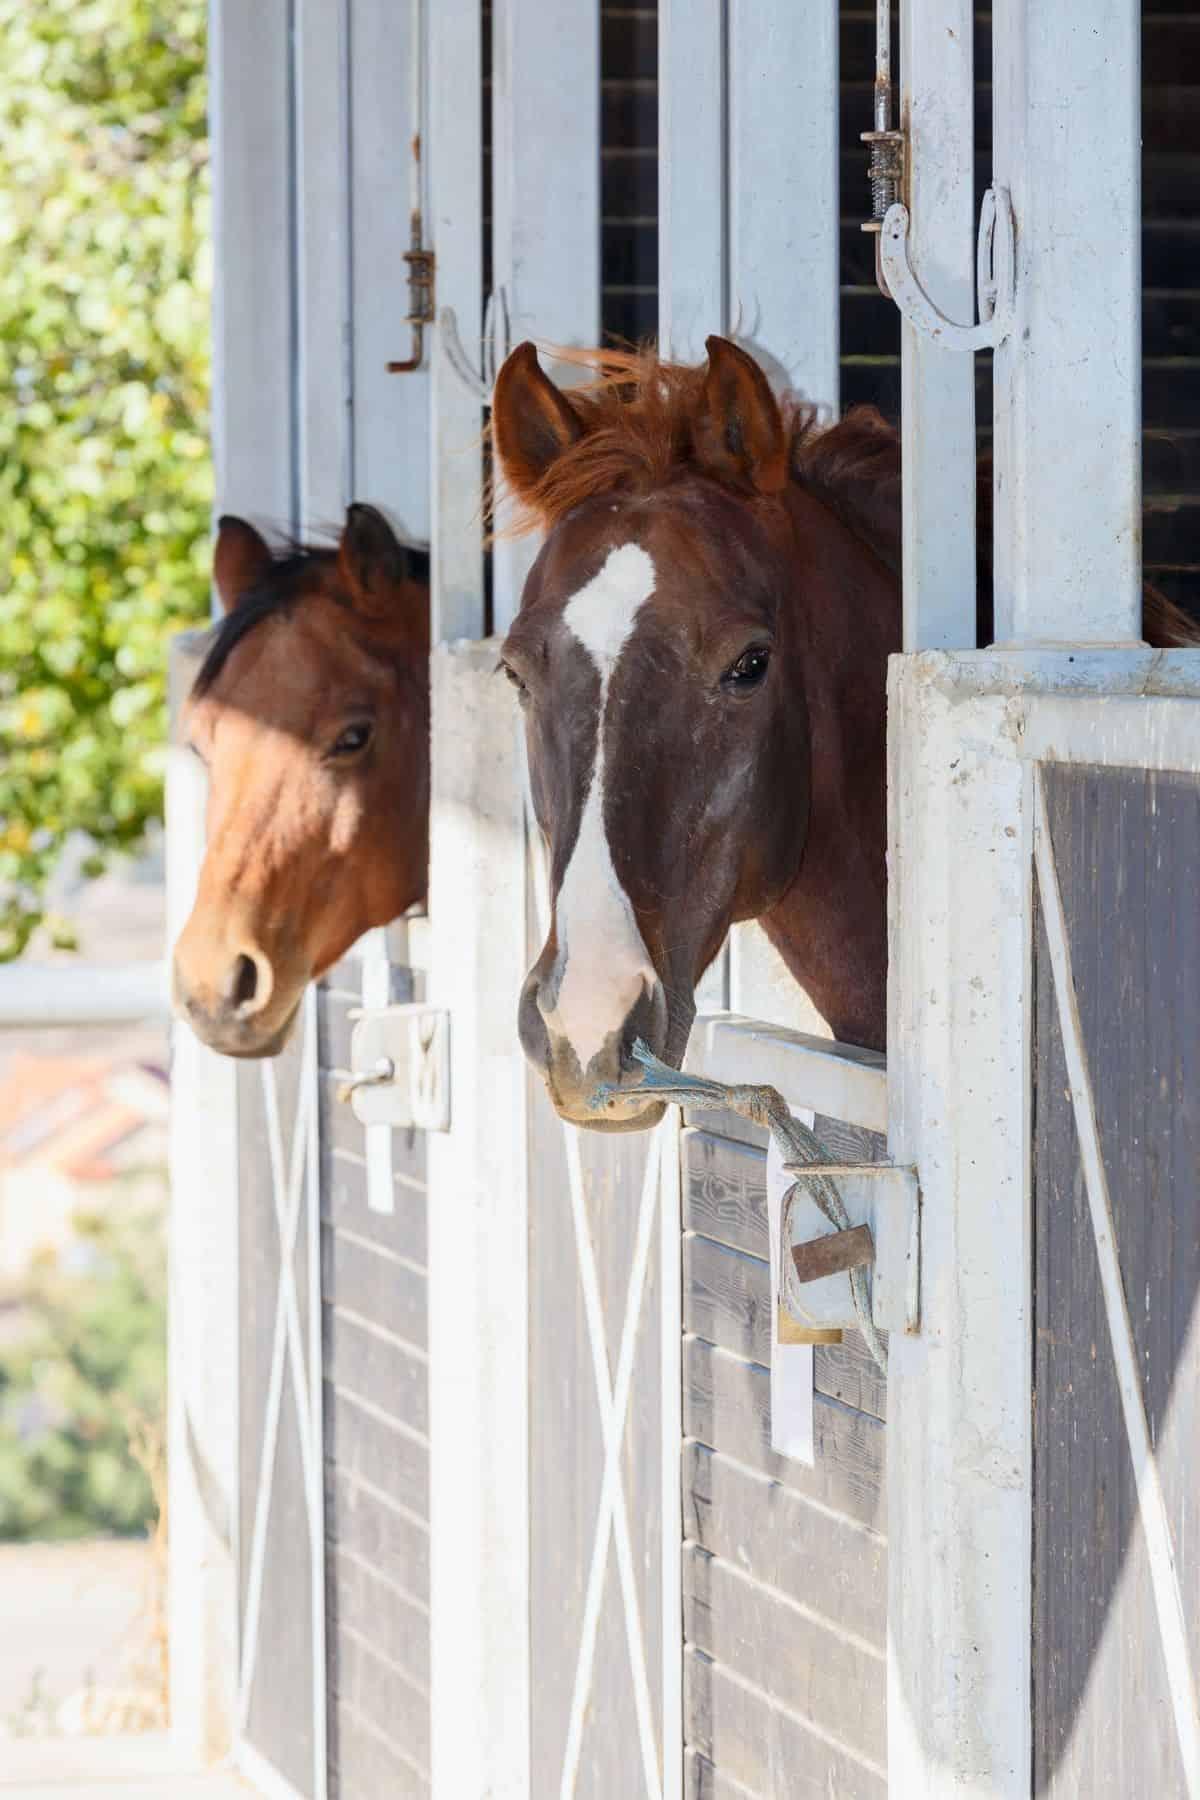 Two horses with heads out stall doors